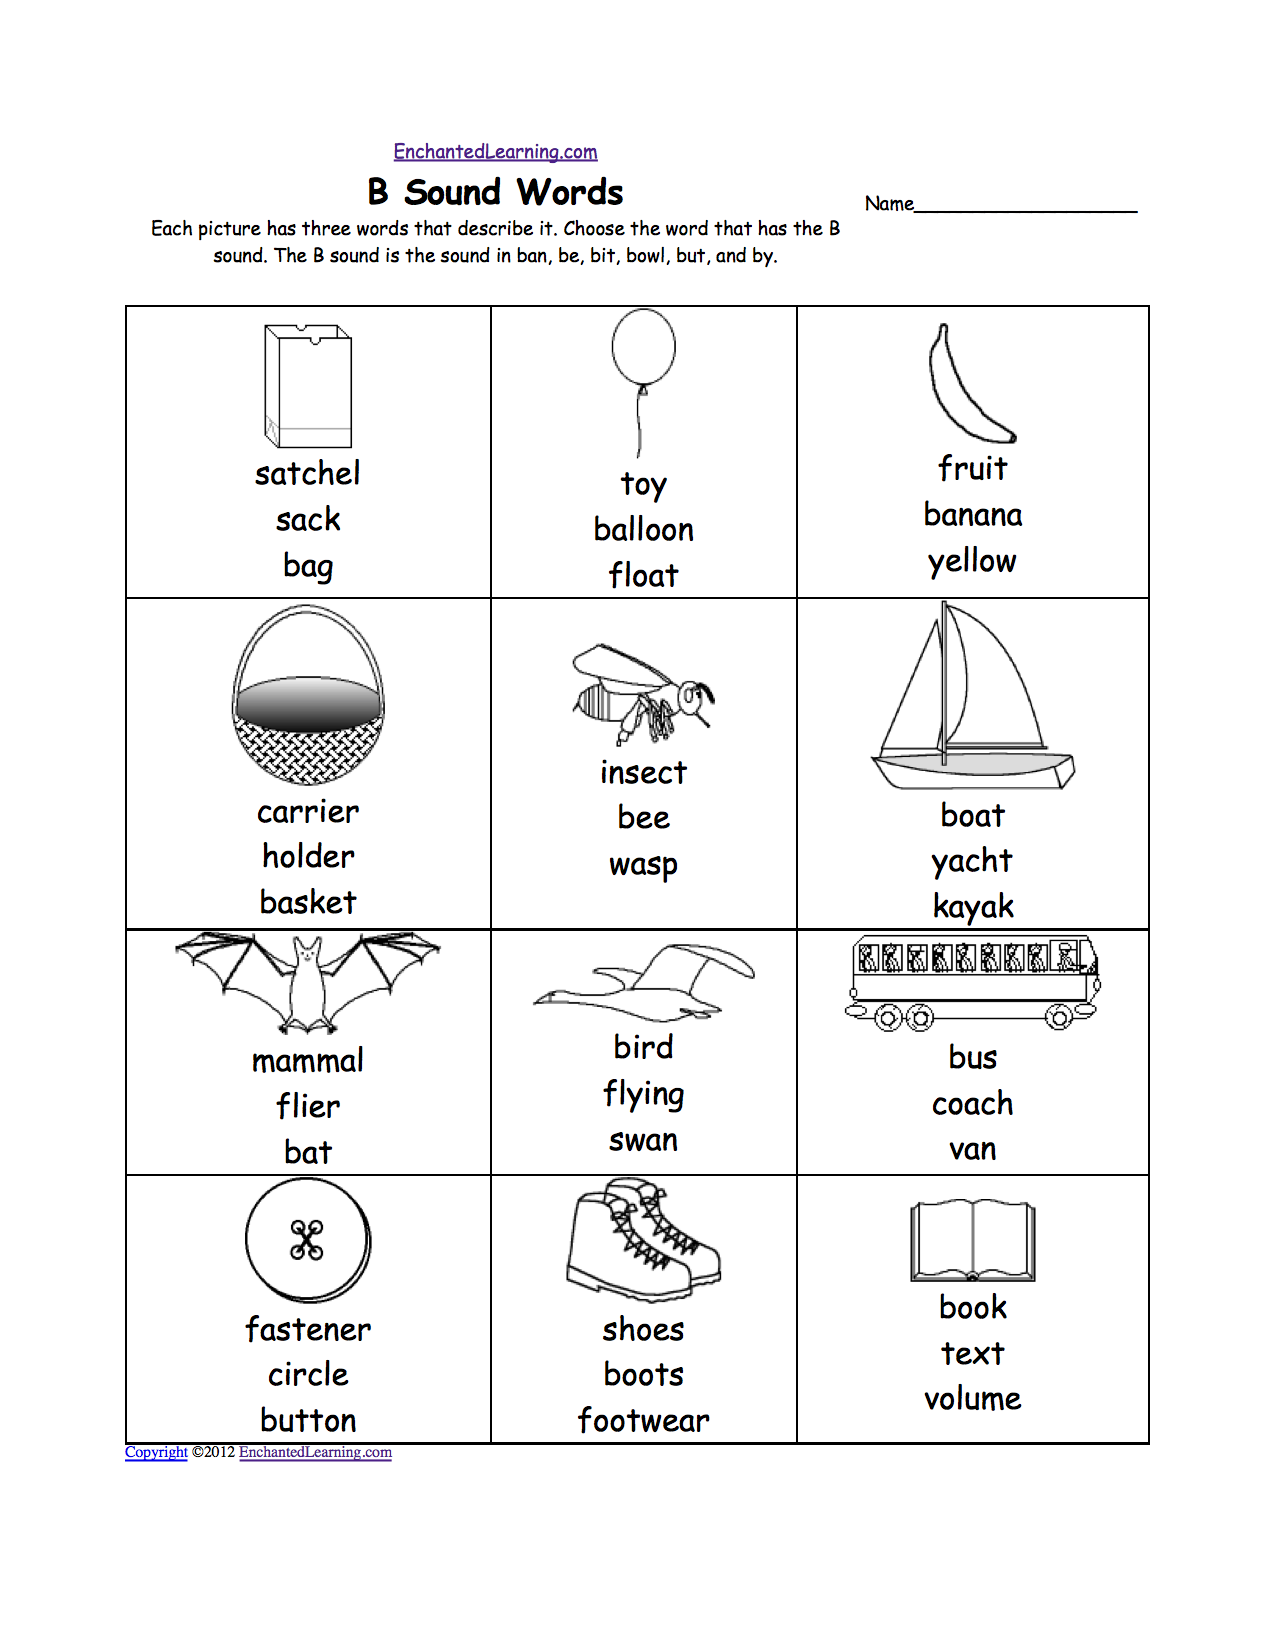 Weirdmailus  Personable Phonics Worksheets Multiple Choice Worksheets To Print  With Great Quotbquot Sound Phonics Worksheet Multiple Choice Each Picture Has Three Words That Describe It Choose The Word That Has A Quotbquot Sound The Quotbquot Sound Is The Sound  With Enchanting Risk Management Worksheet Also Exercise Worksheets In Addition Closed Syllable Worksheets And Printable Bible Study Worksheets For Adults As Well As Literature Circles Worksheets Additionally Worksheet Maker Free From Enchantedlearningcom With Weirdmailus  Great Phonics Worksheets Multiple Choice Worksheets To Print  With Enchanting Quotbquot Sound Phonics Worksheet Multiple Choice Each Picture Has Three Words That Describe It Choose The Word That Has A Quotbquot Sound The Quotbquot Sound Is The Sound  And Personable Risk Management Worksheet Also Exercise Worksheets In Addition Closed Syllable Worksheets From Enchantedlearningcom